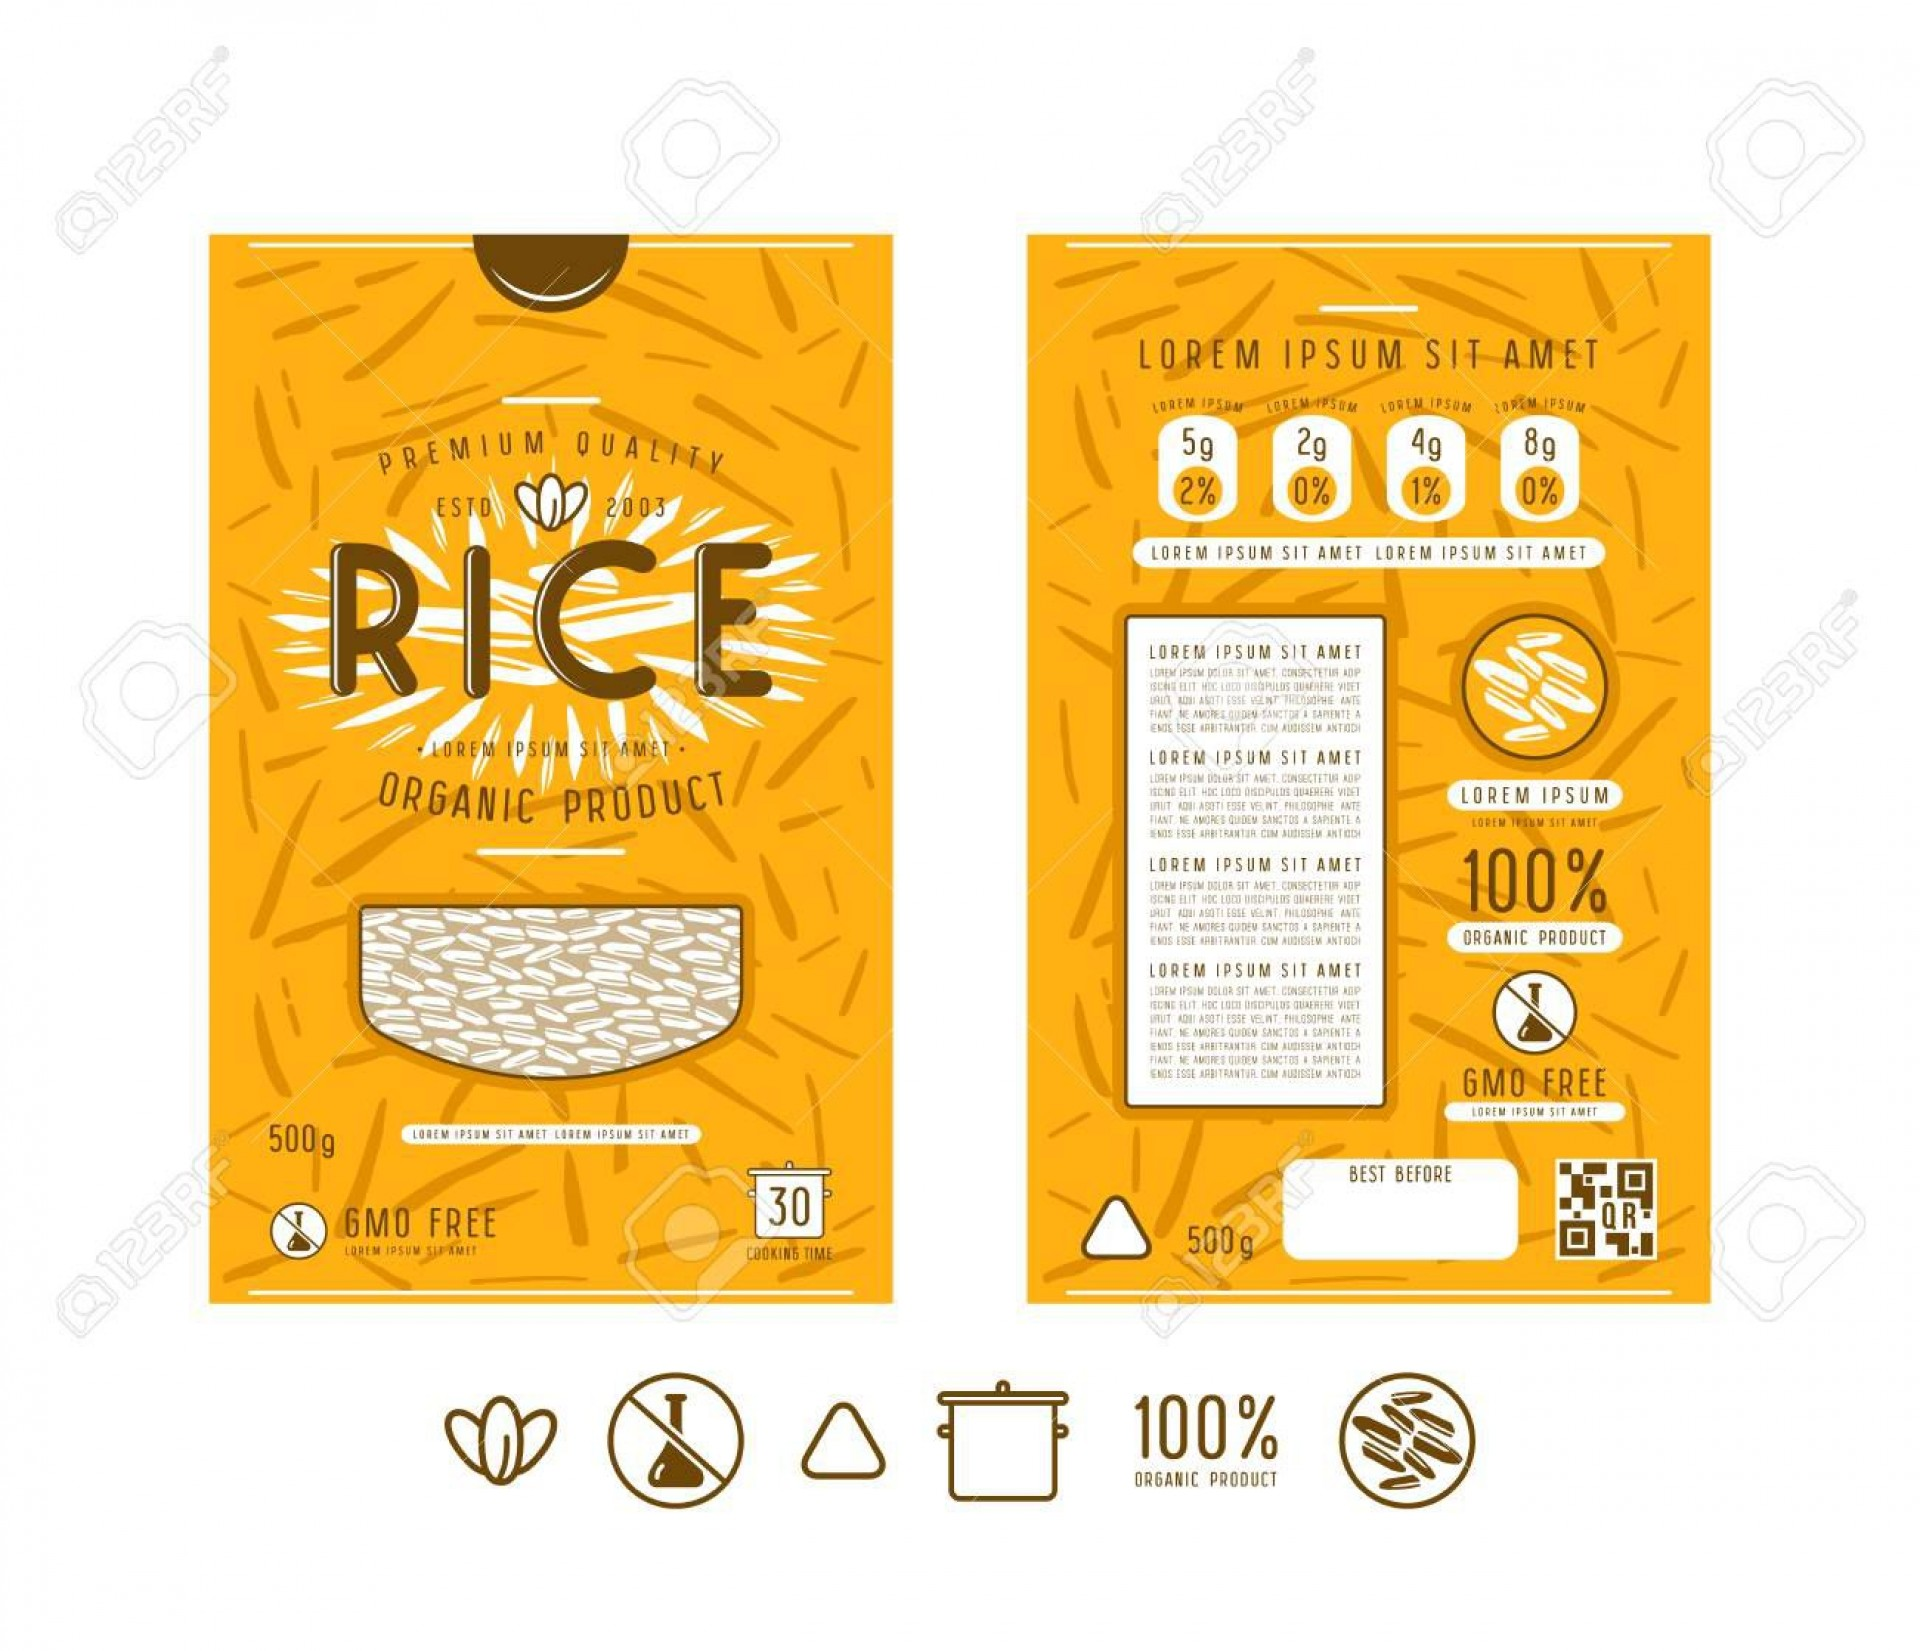 003 Simple Free Food Label Design Template Highest Quality  Templates Download1920